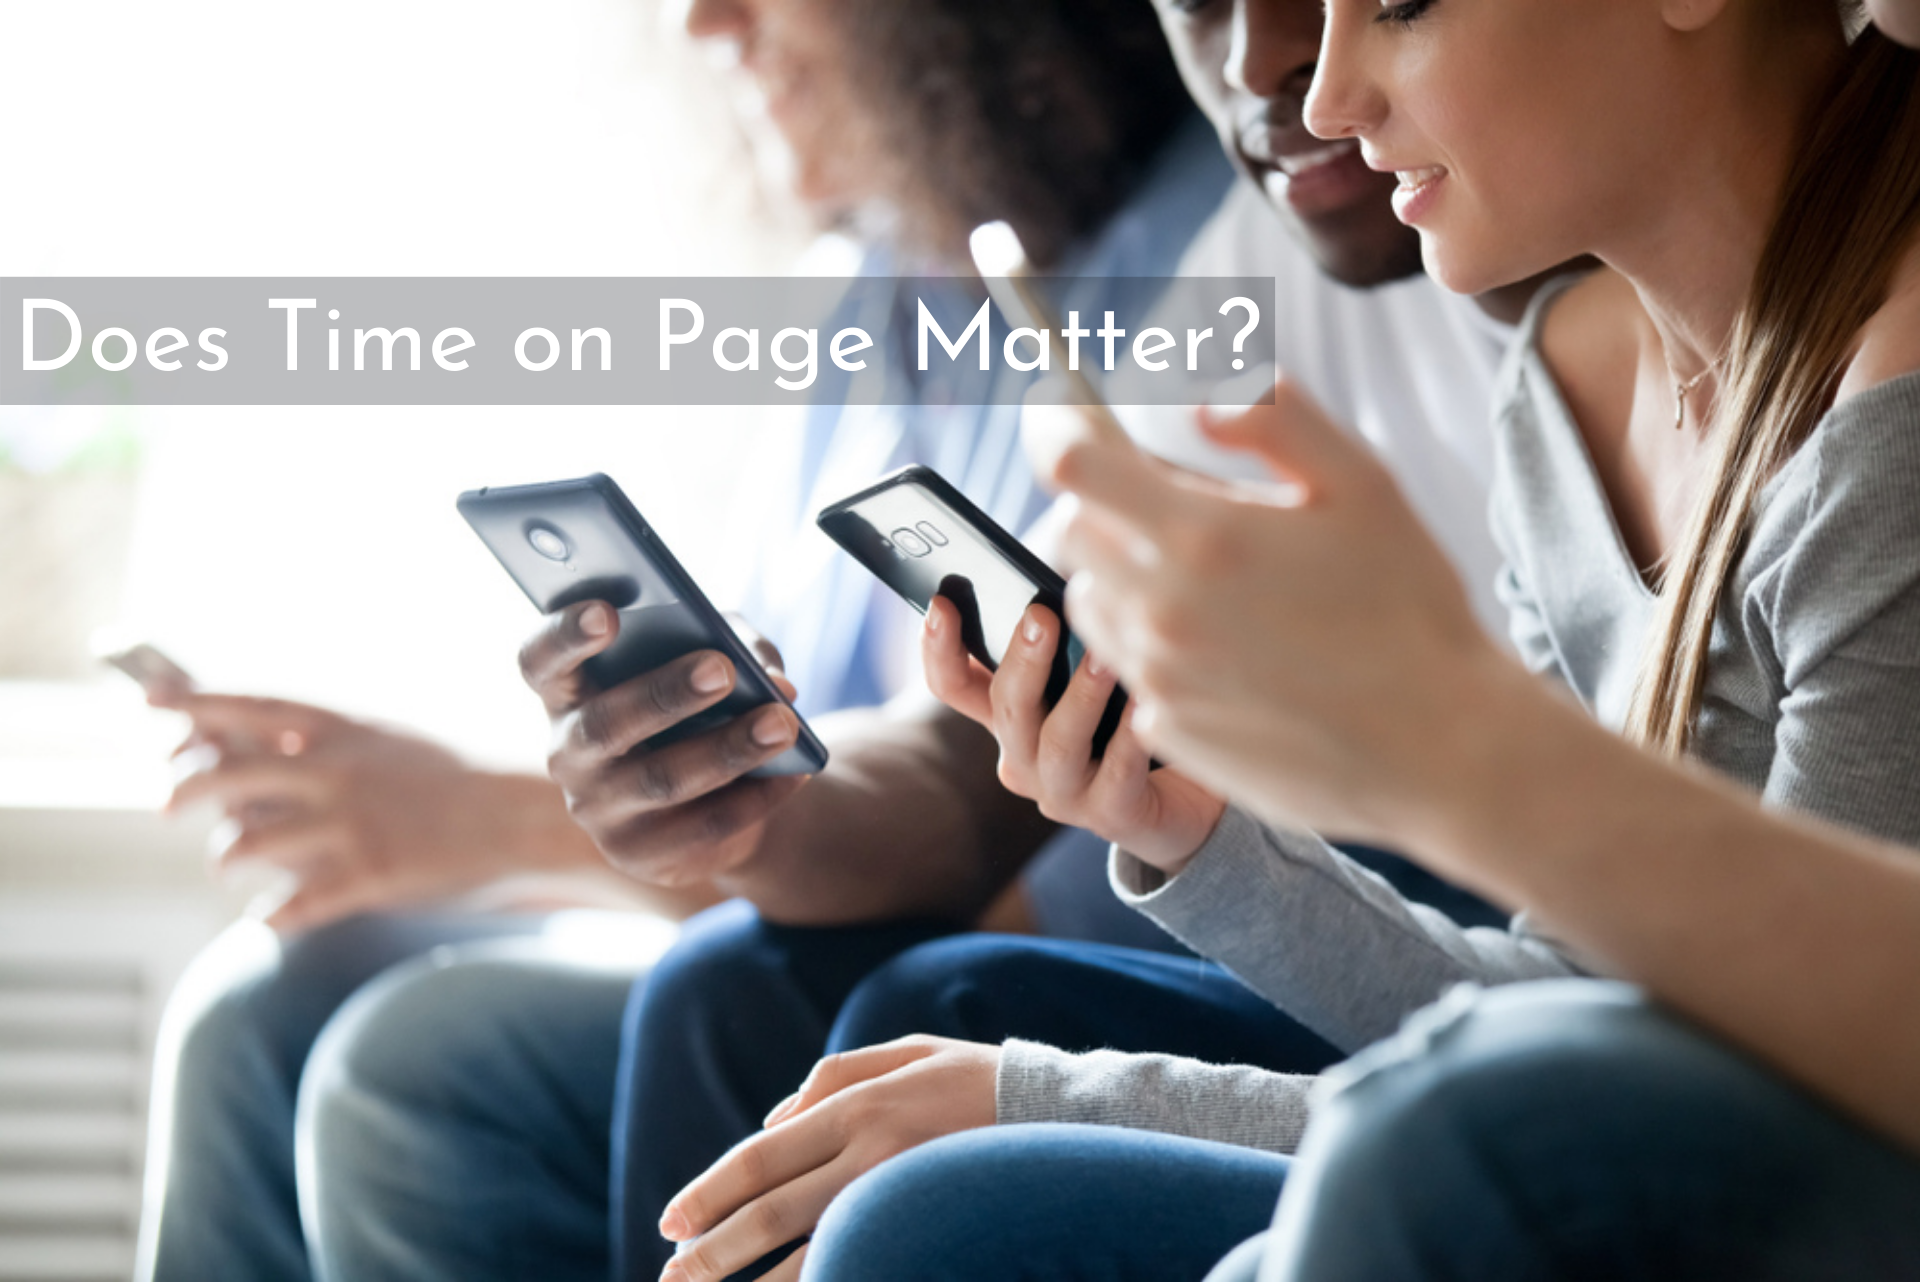 Does Time on Page Matter?